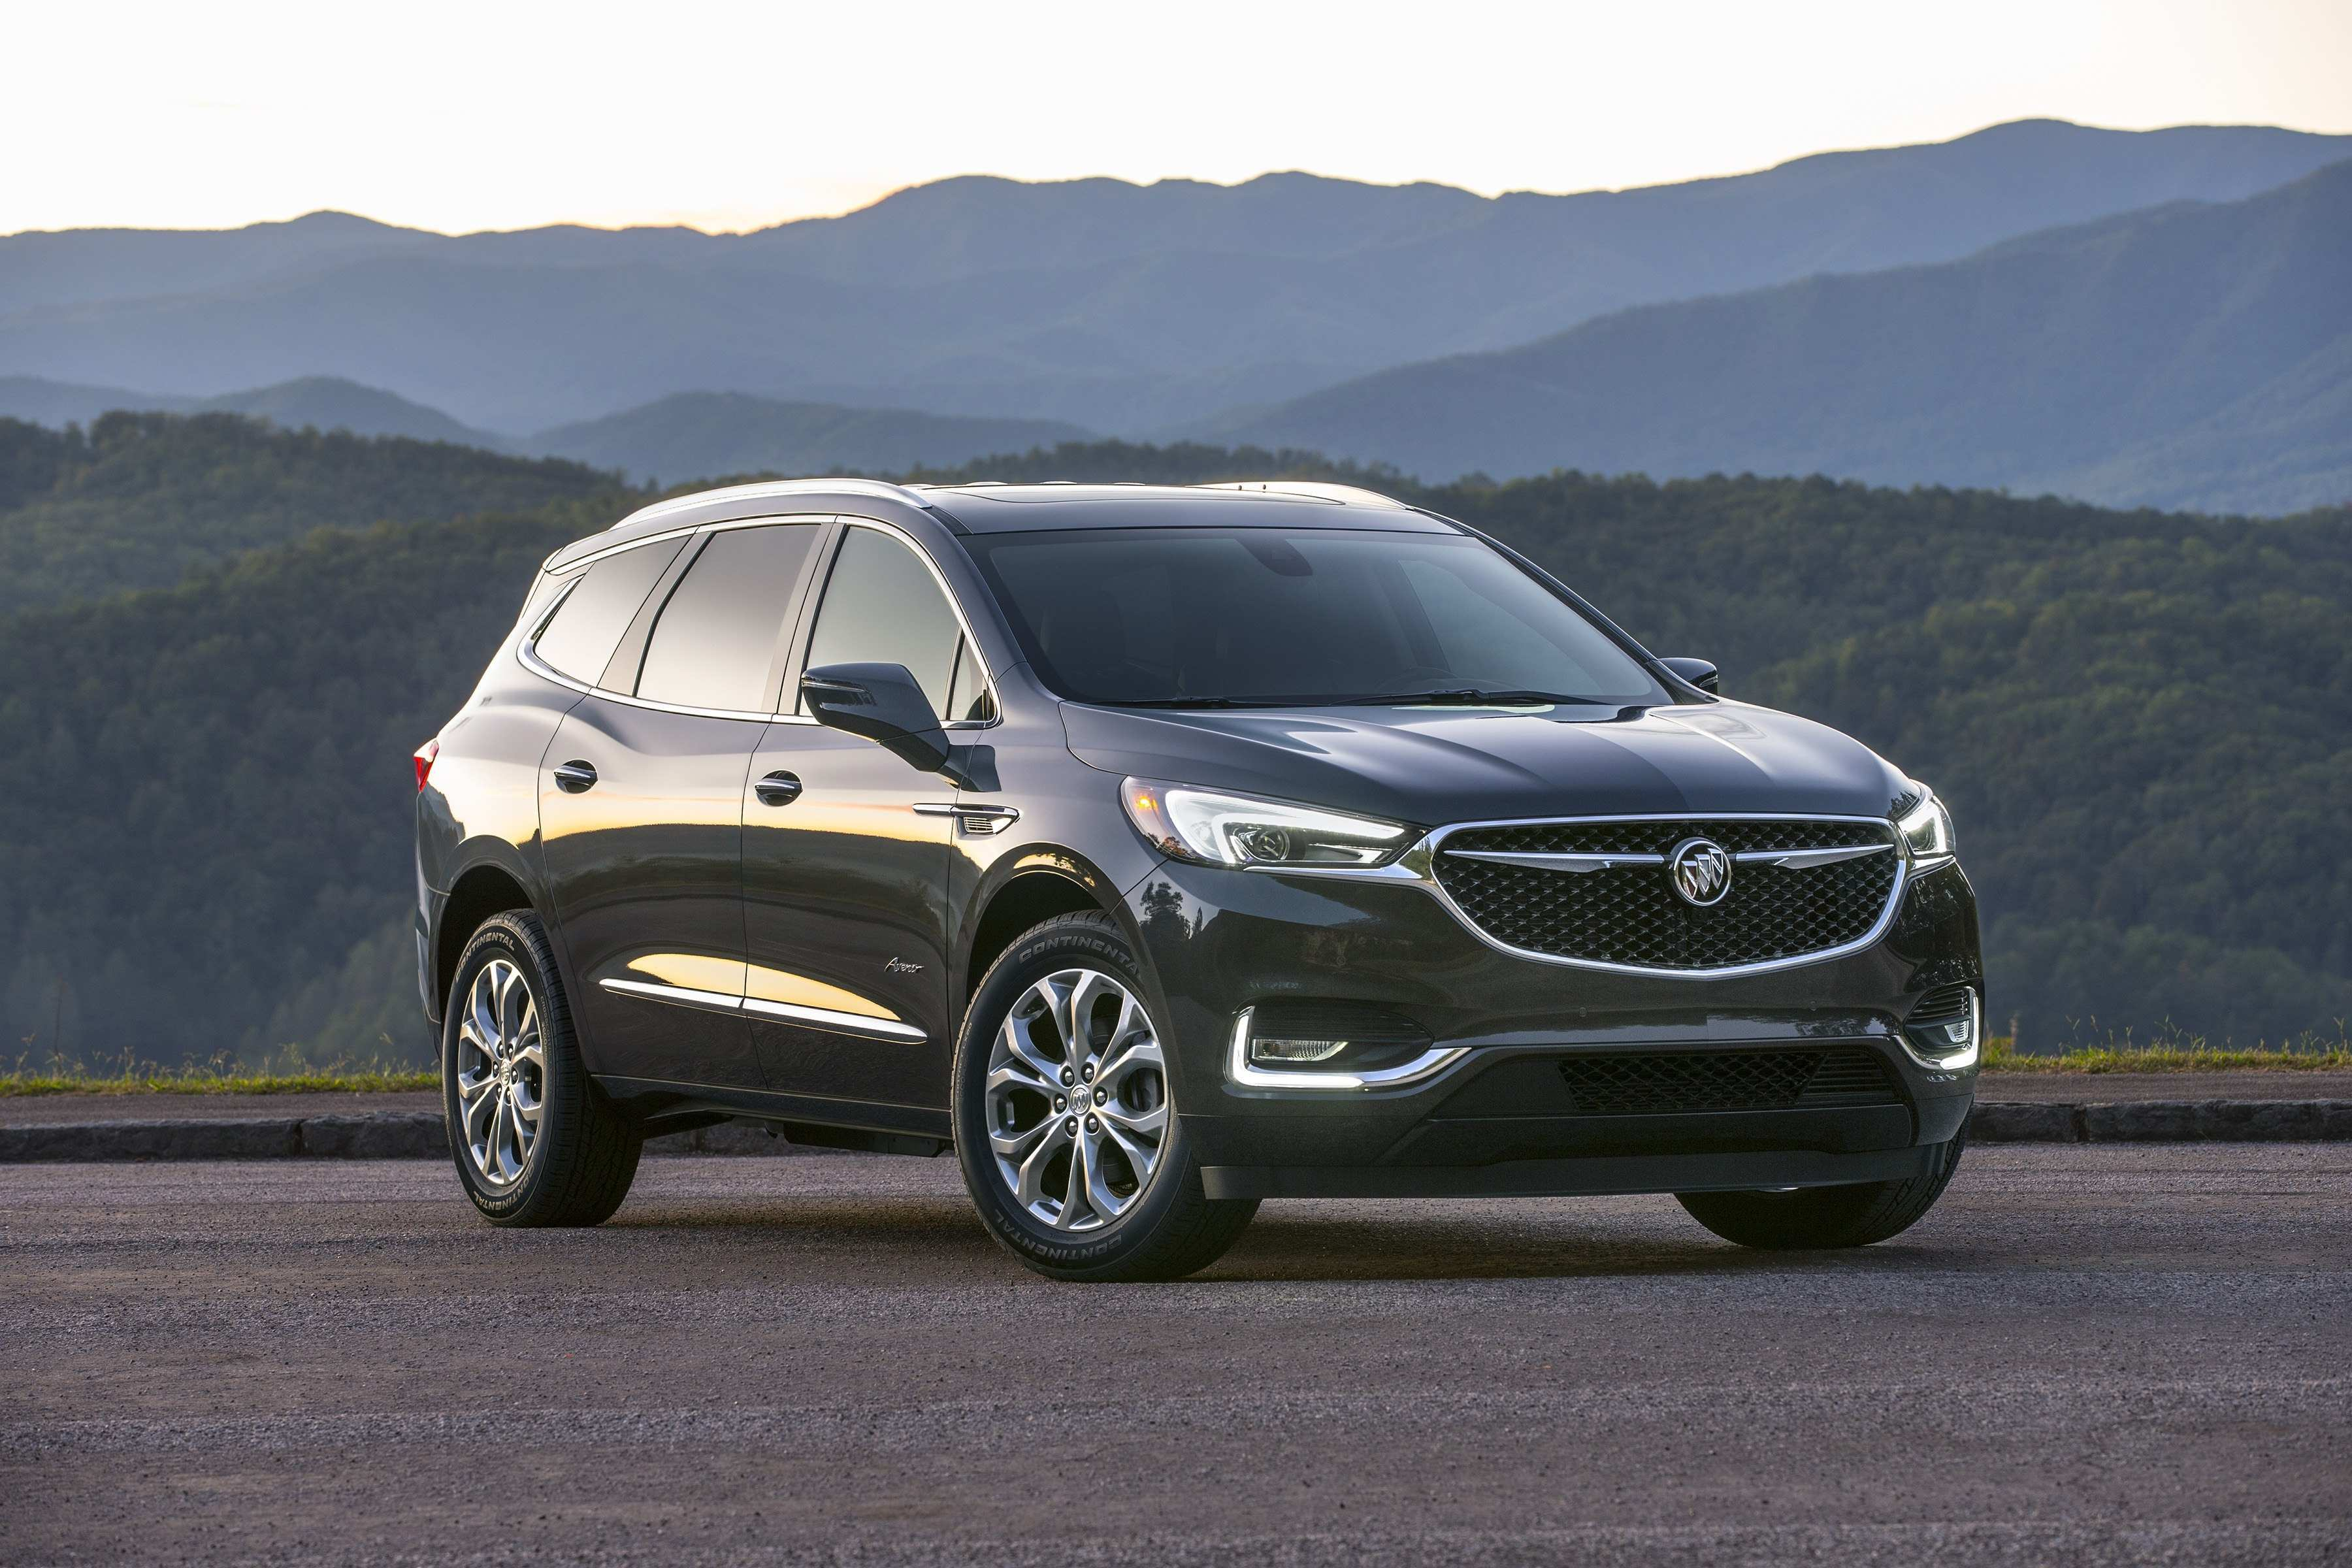 25 New The 2019 Buick Enclave Wheelbase Review Review with The 2019 Buick Enclave Wheelbase Review